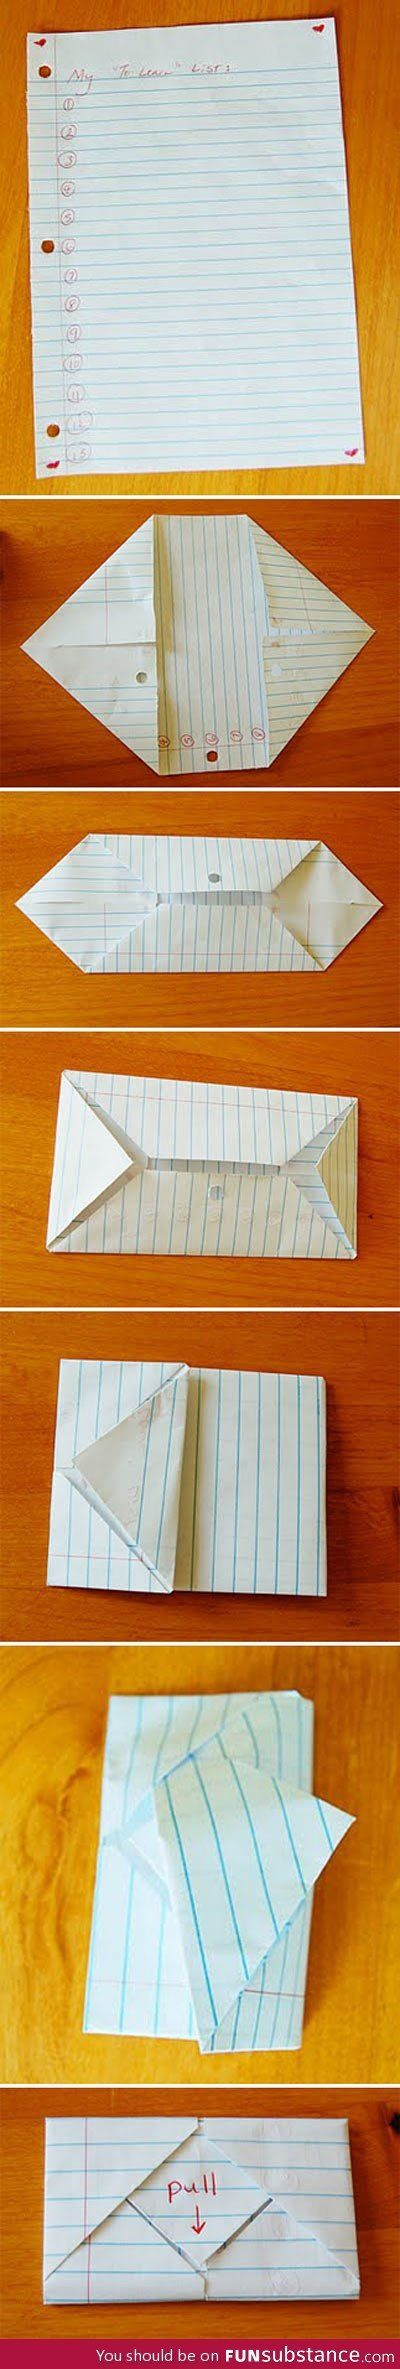 001 How to fold an envelope from rectangular paper Cool